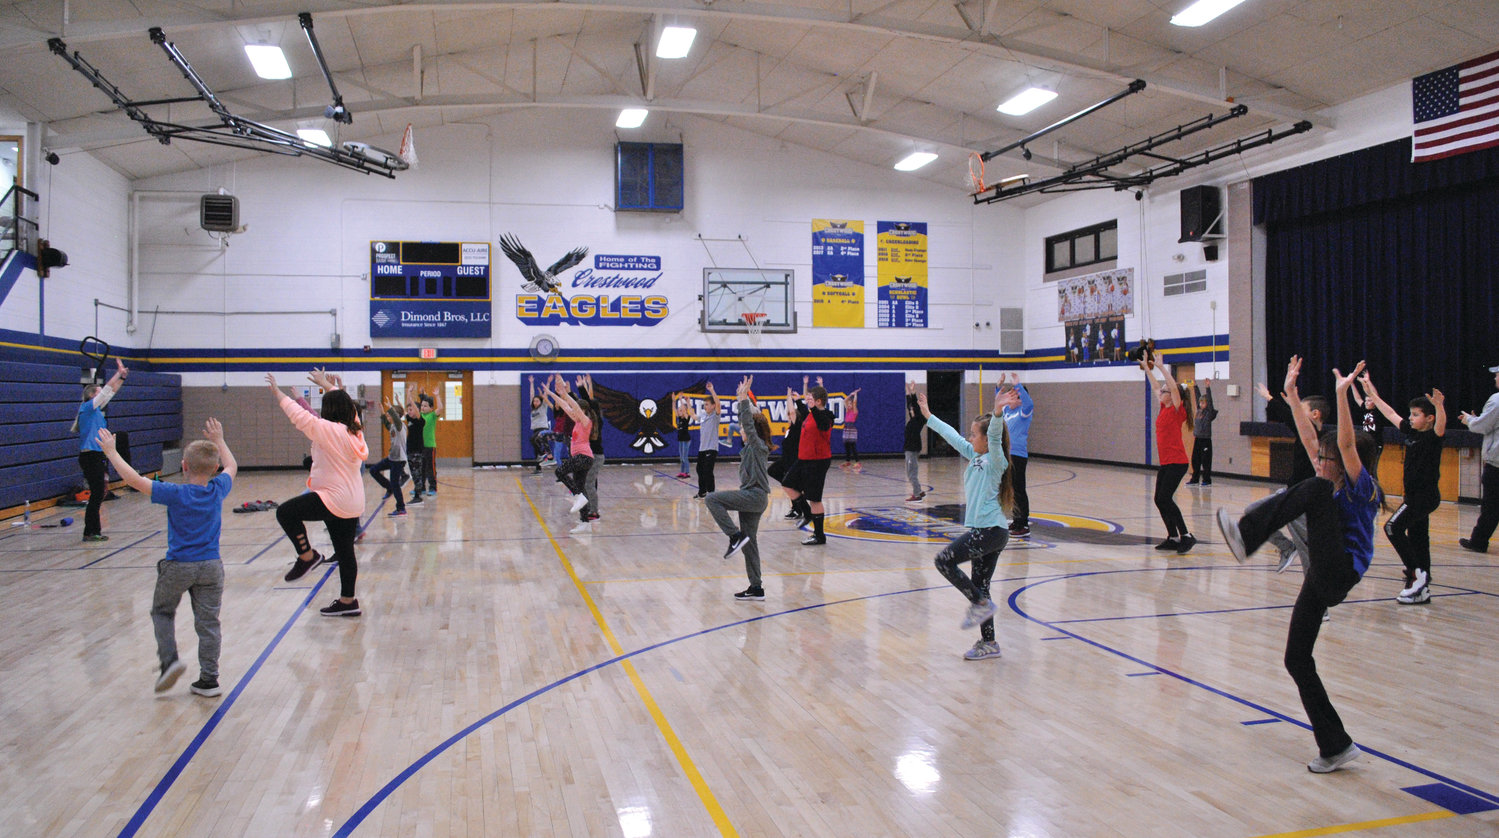 Fourth graders kick up their heels with Ali Antkiewicz during the Healthy Bodies session at Crestwood Elementary. Students measured their mood before and after exercising, and many found they felt happier after their musical workout.